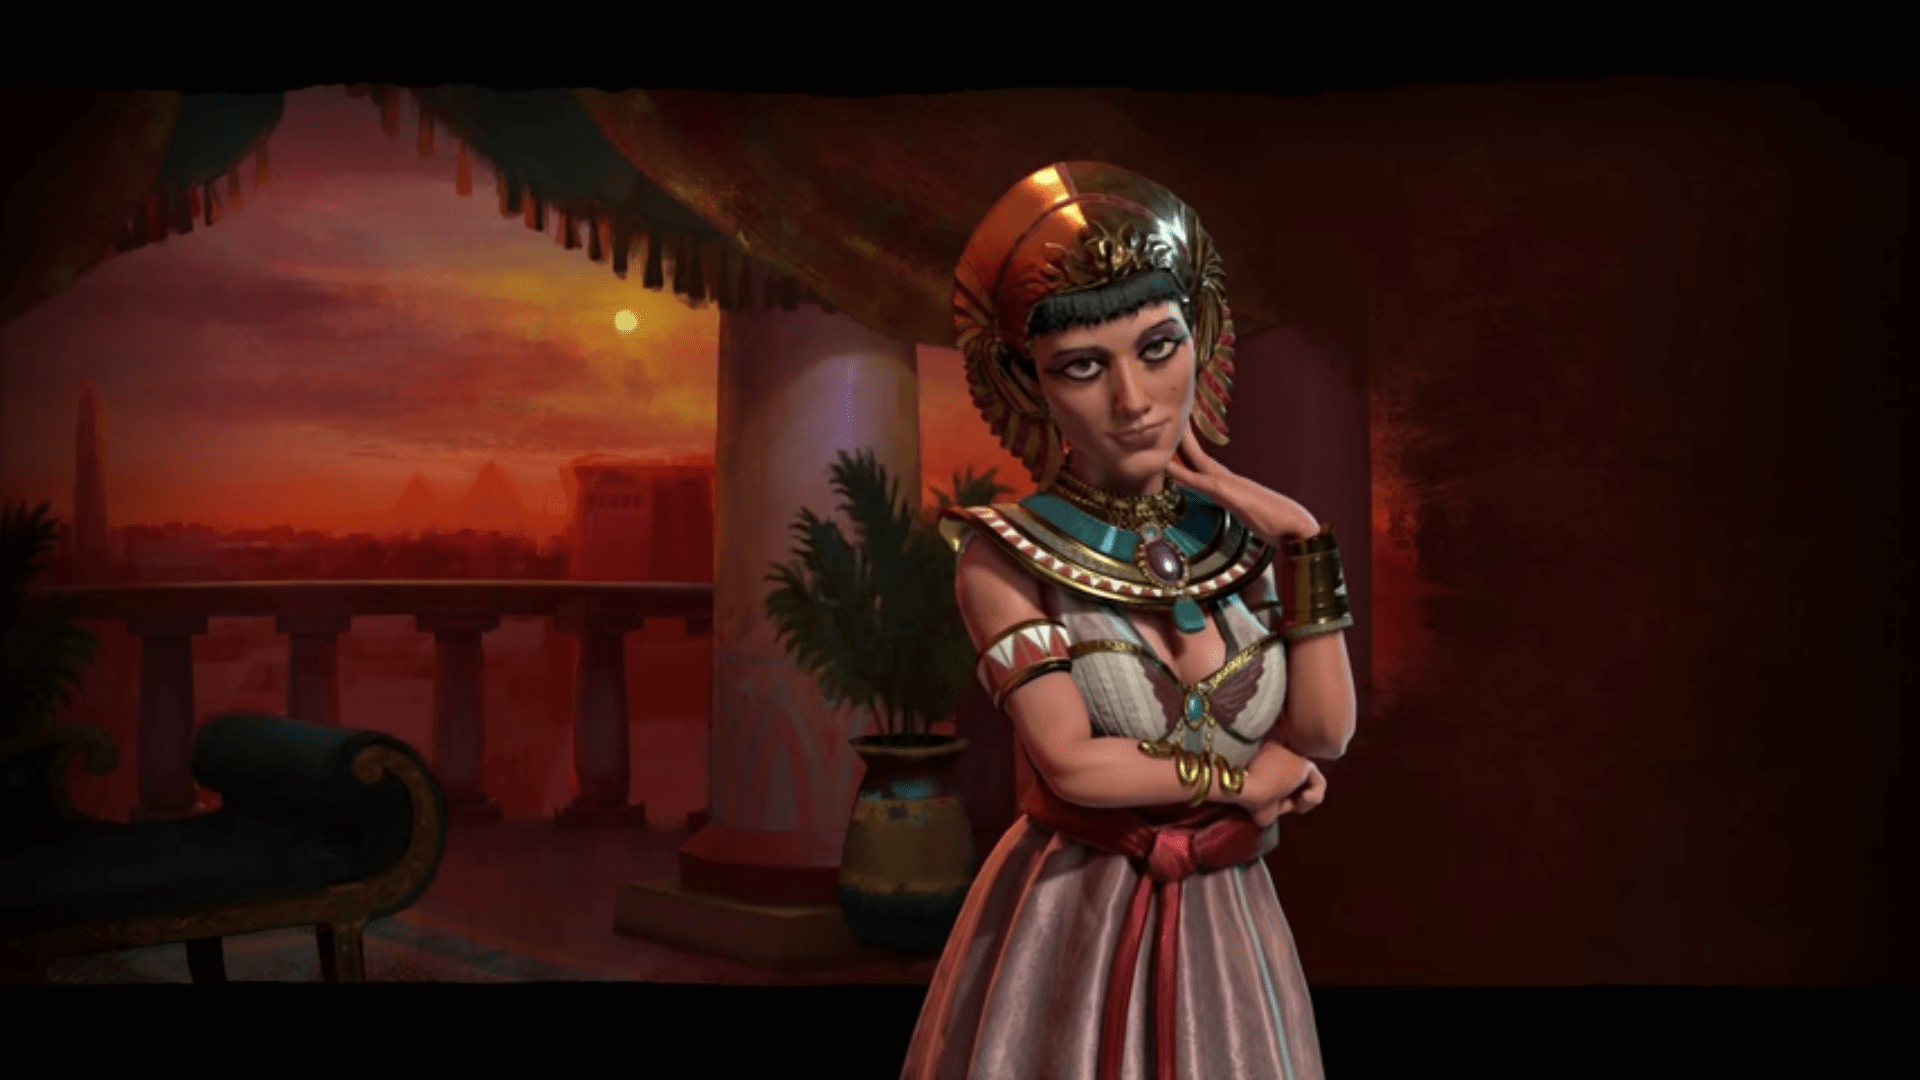 Civilization 6 Unveils Its First Look At Egypt VG247